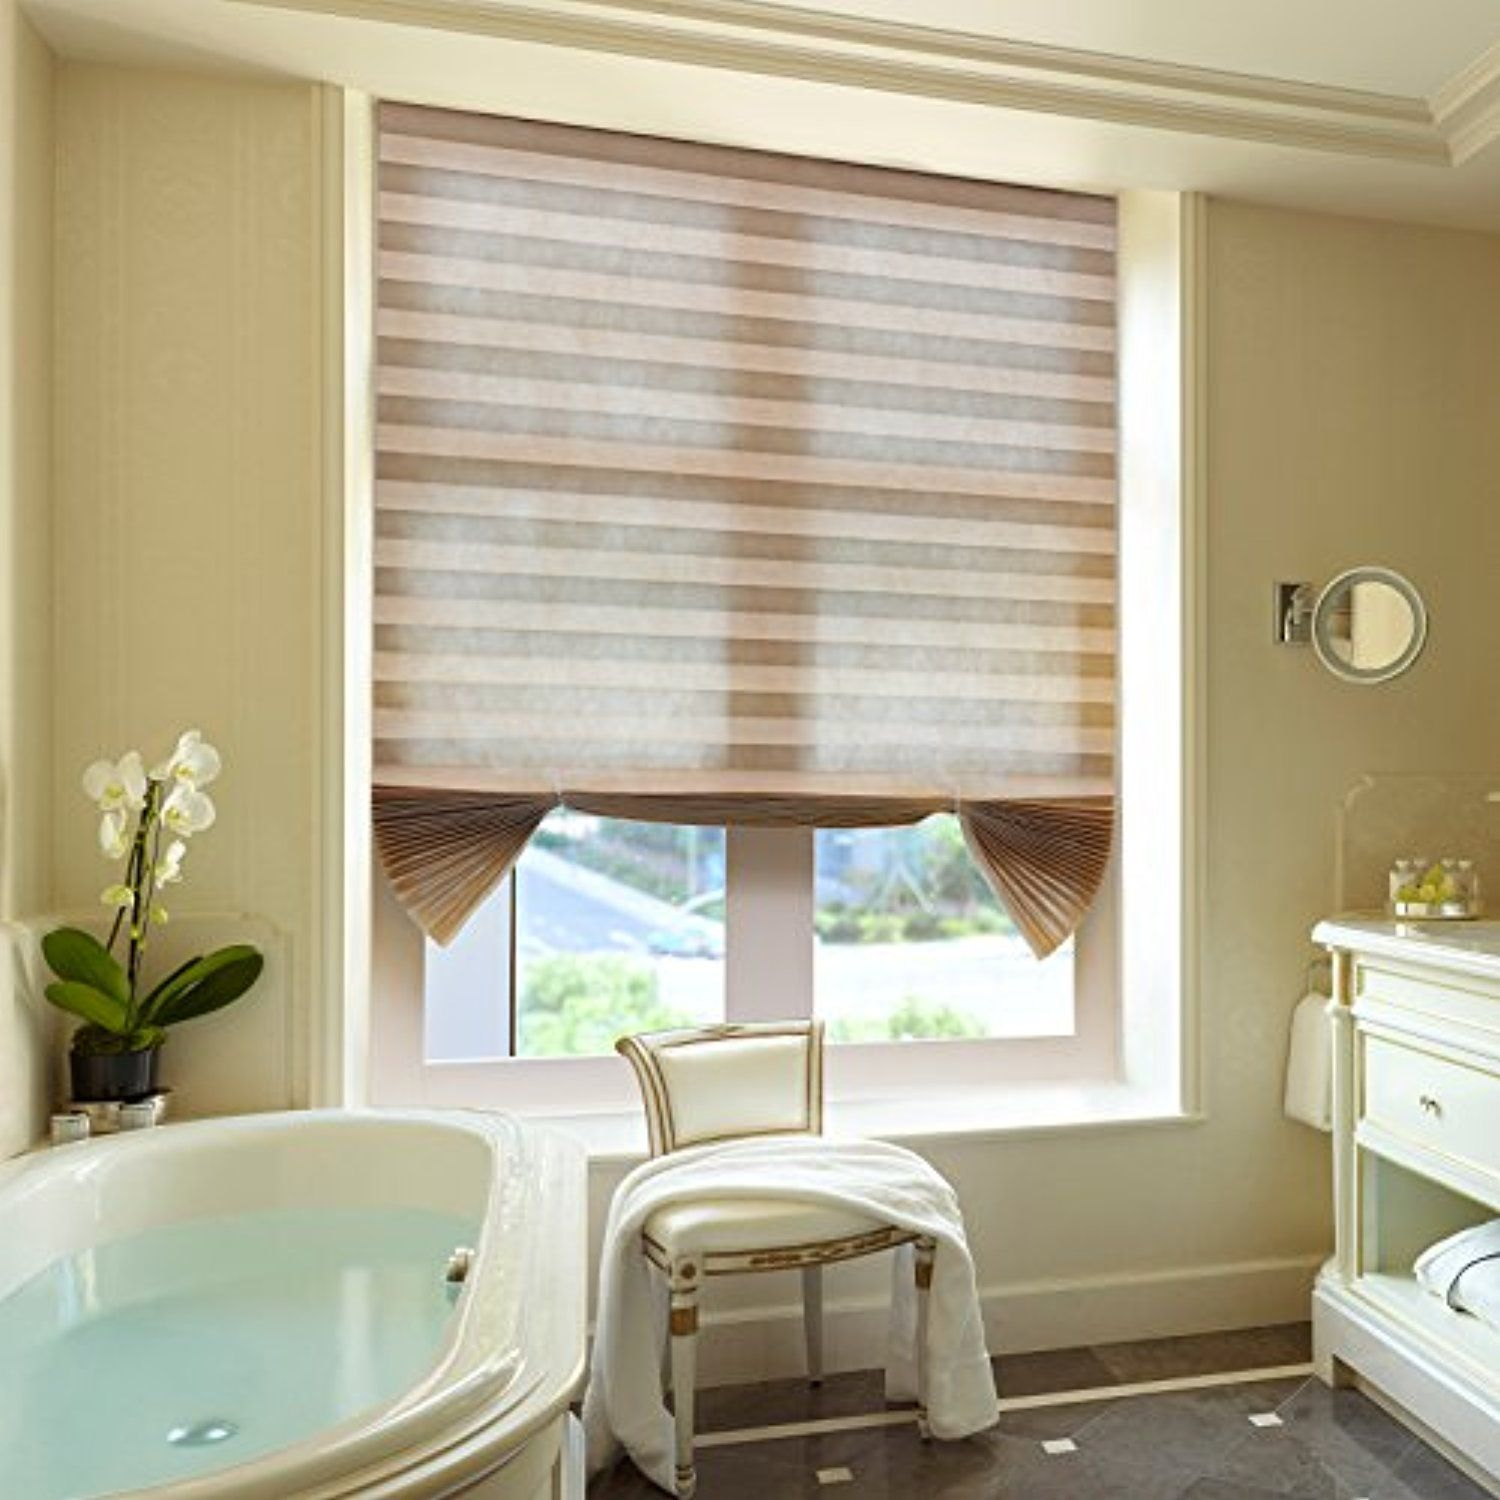 Pleated Shades Cordless for Window Light Filtering Shades